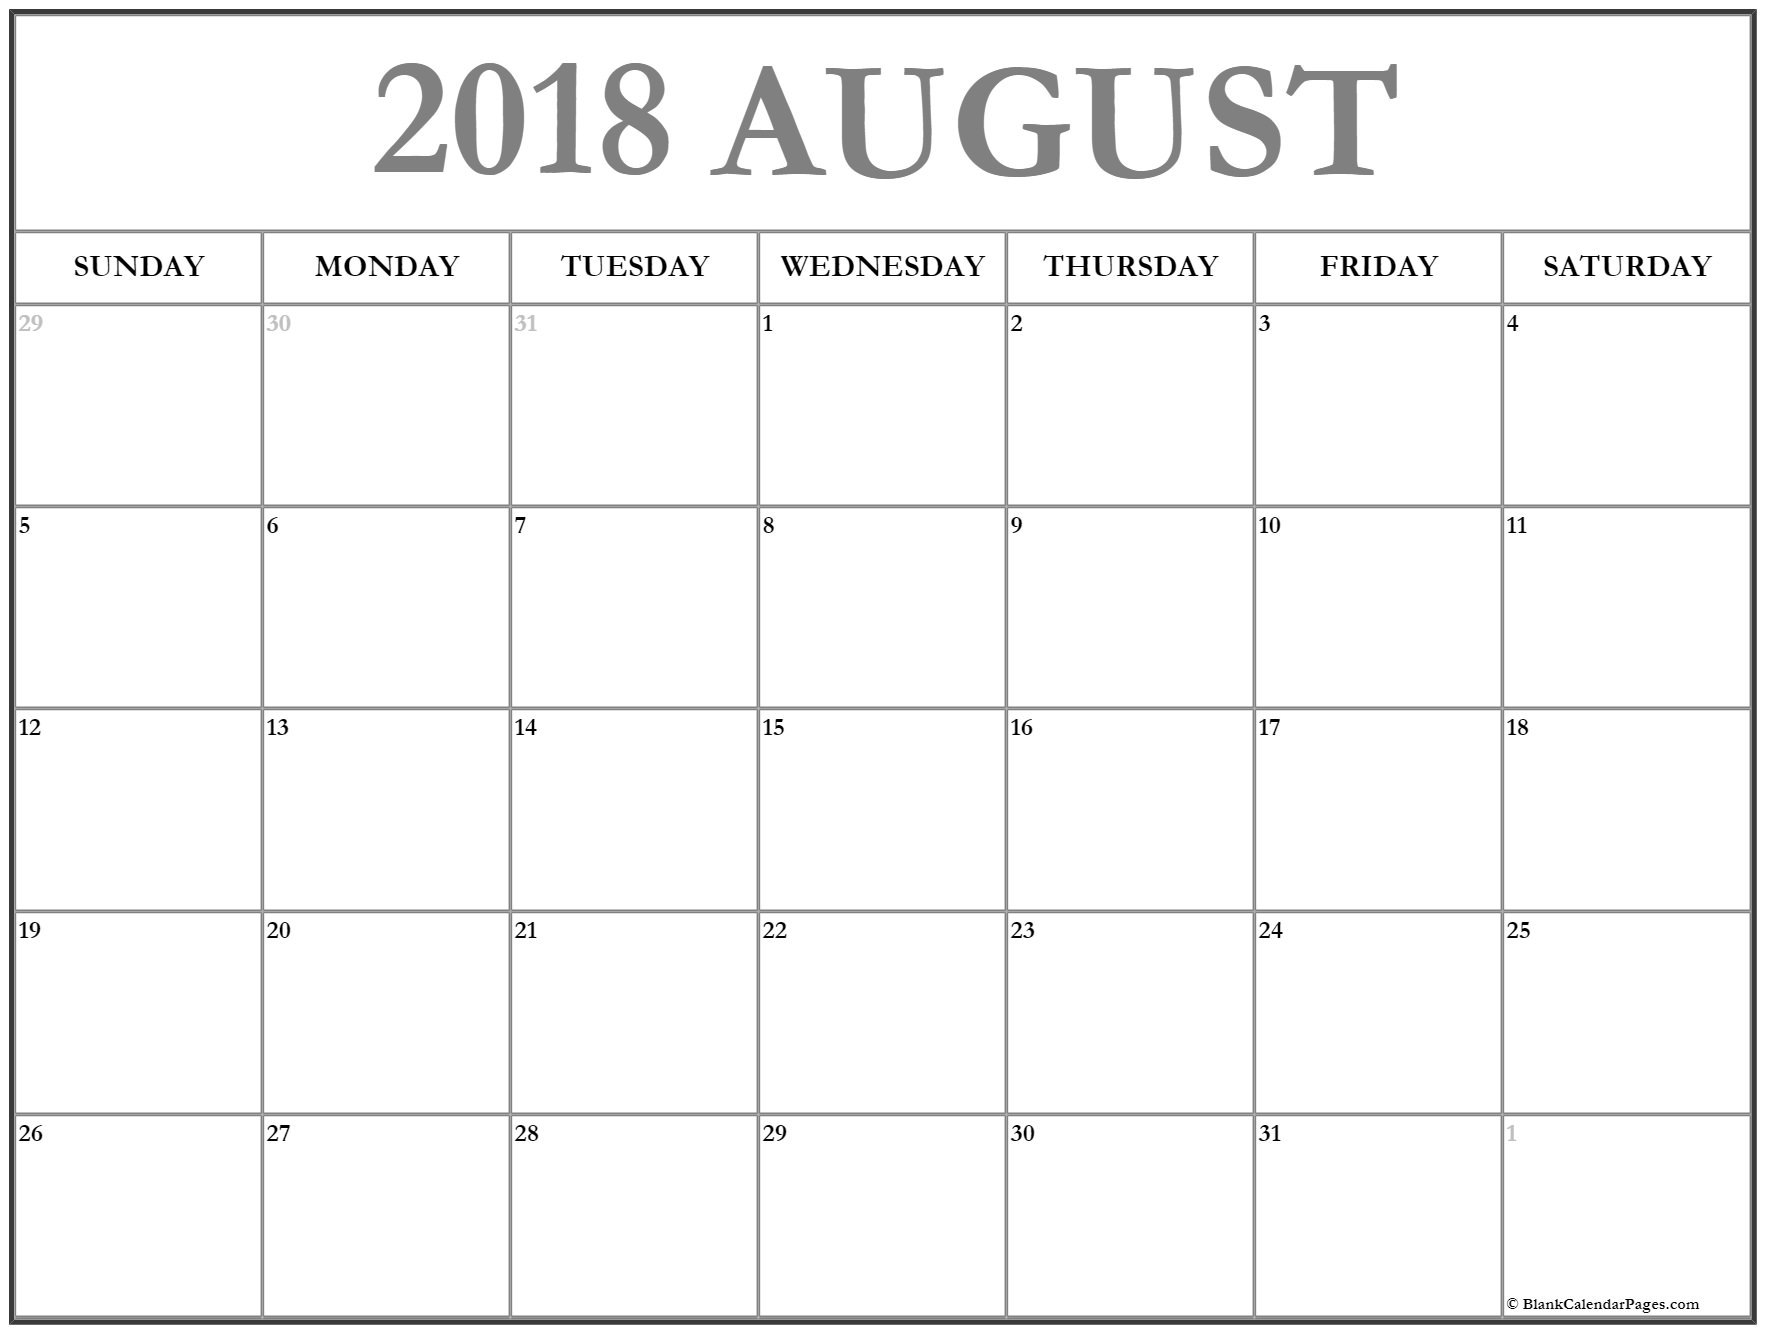 August 2018 Calendar Excel Worksheet